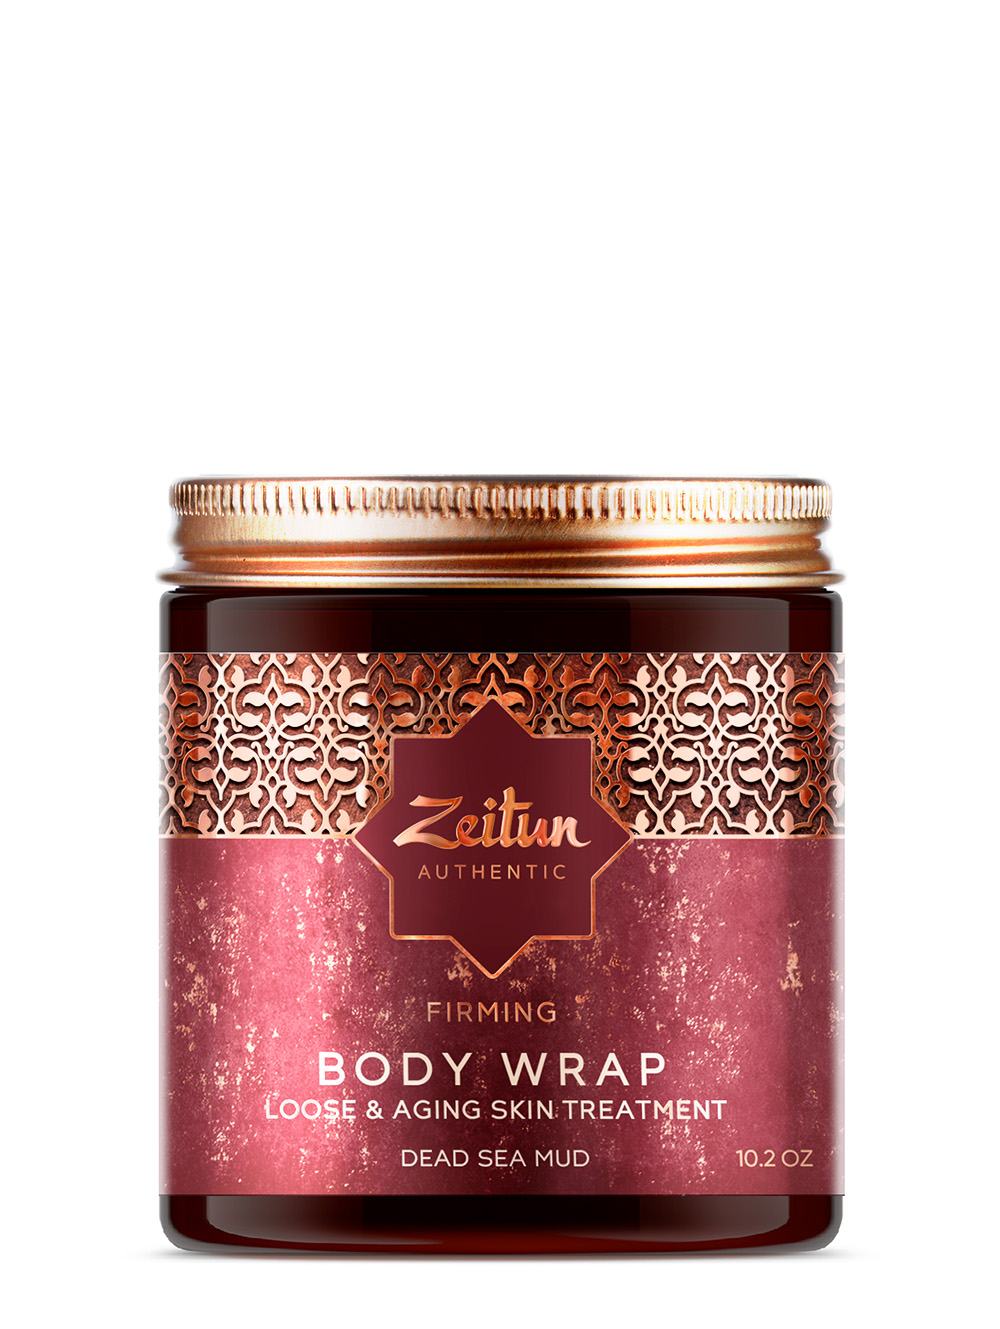 Firming Body Wrap with Dead Sea Mud for loose & aging skin